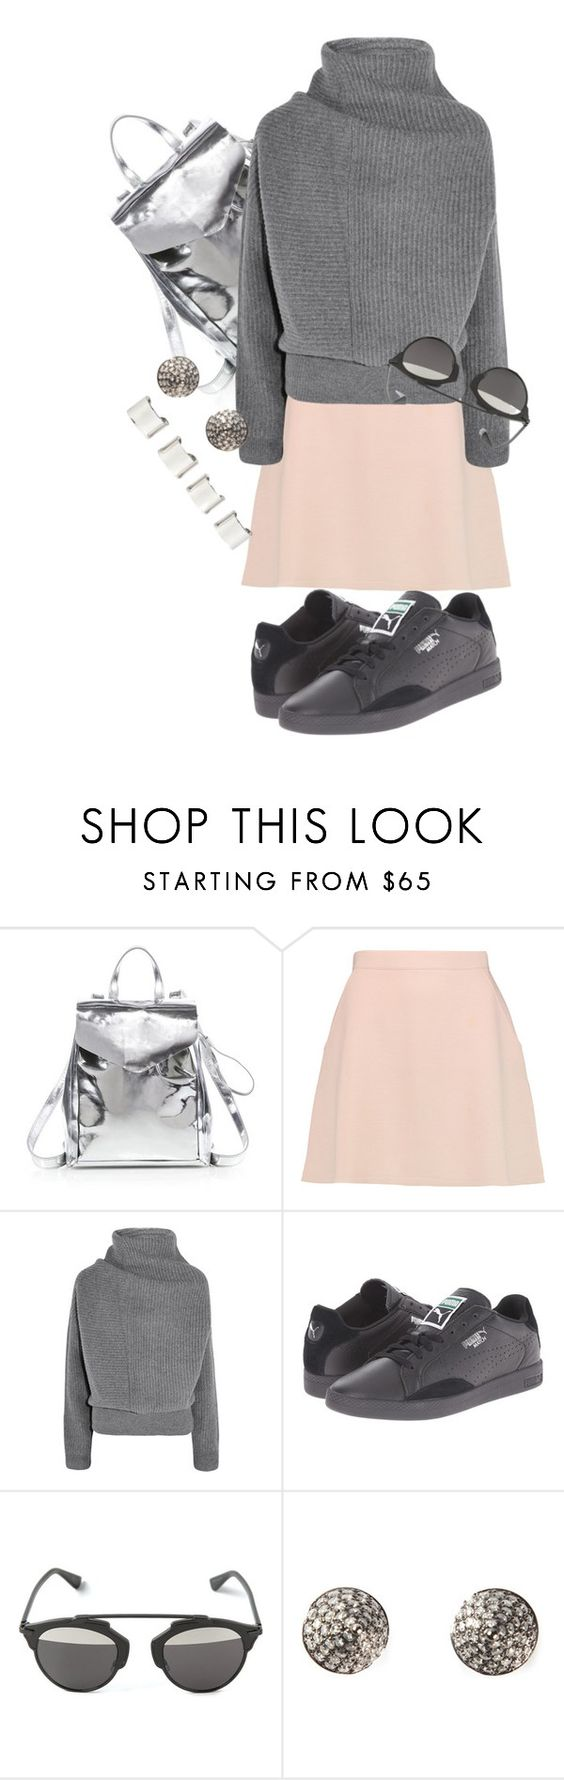 """""""Untitled #483"""" by heybrub ❤ liked on Polyvore featuring Loeffler Randall, Être Cécile, Acne Studios, Puma, Christian Dior, Elise Dray, Maison Margiela, women's clothing, women's fashion and women"""